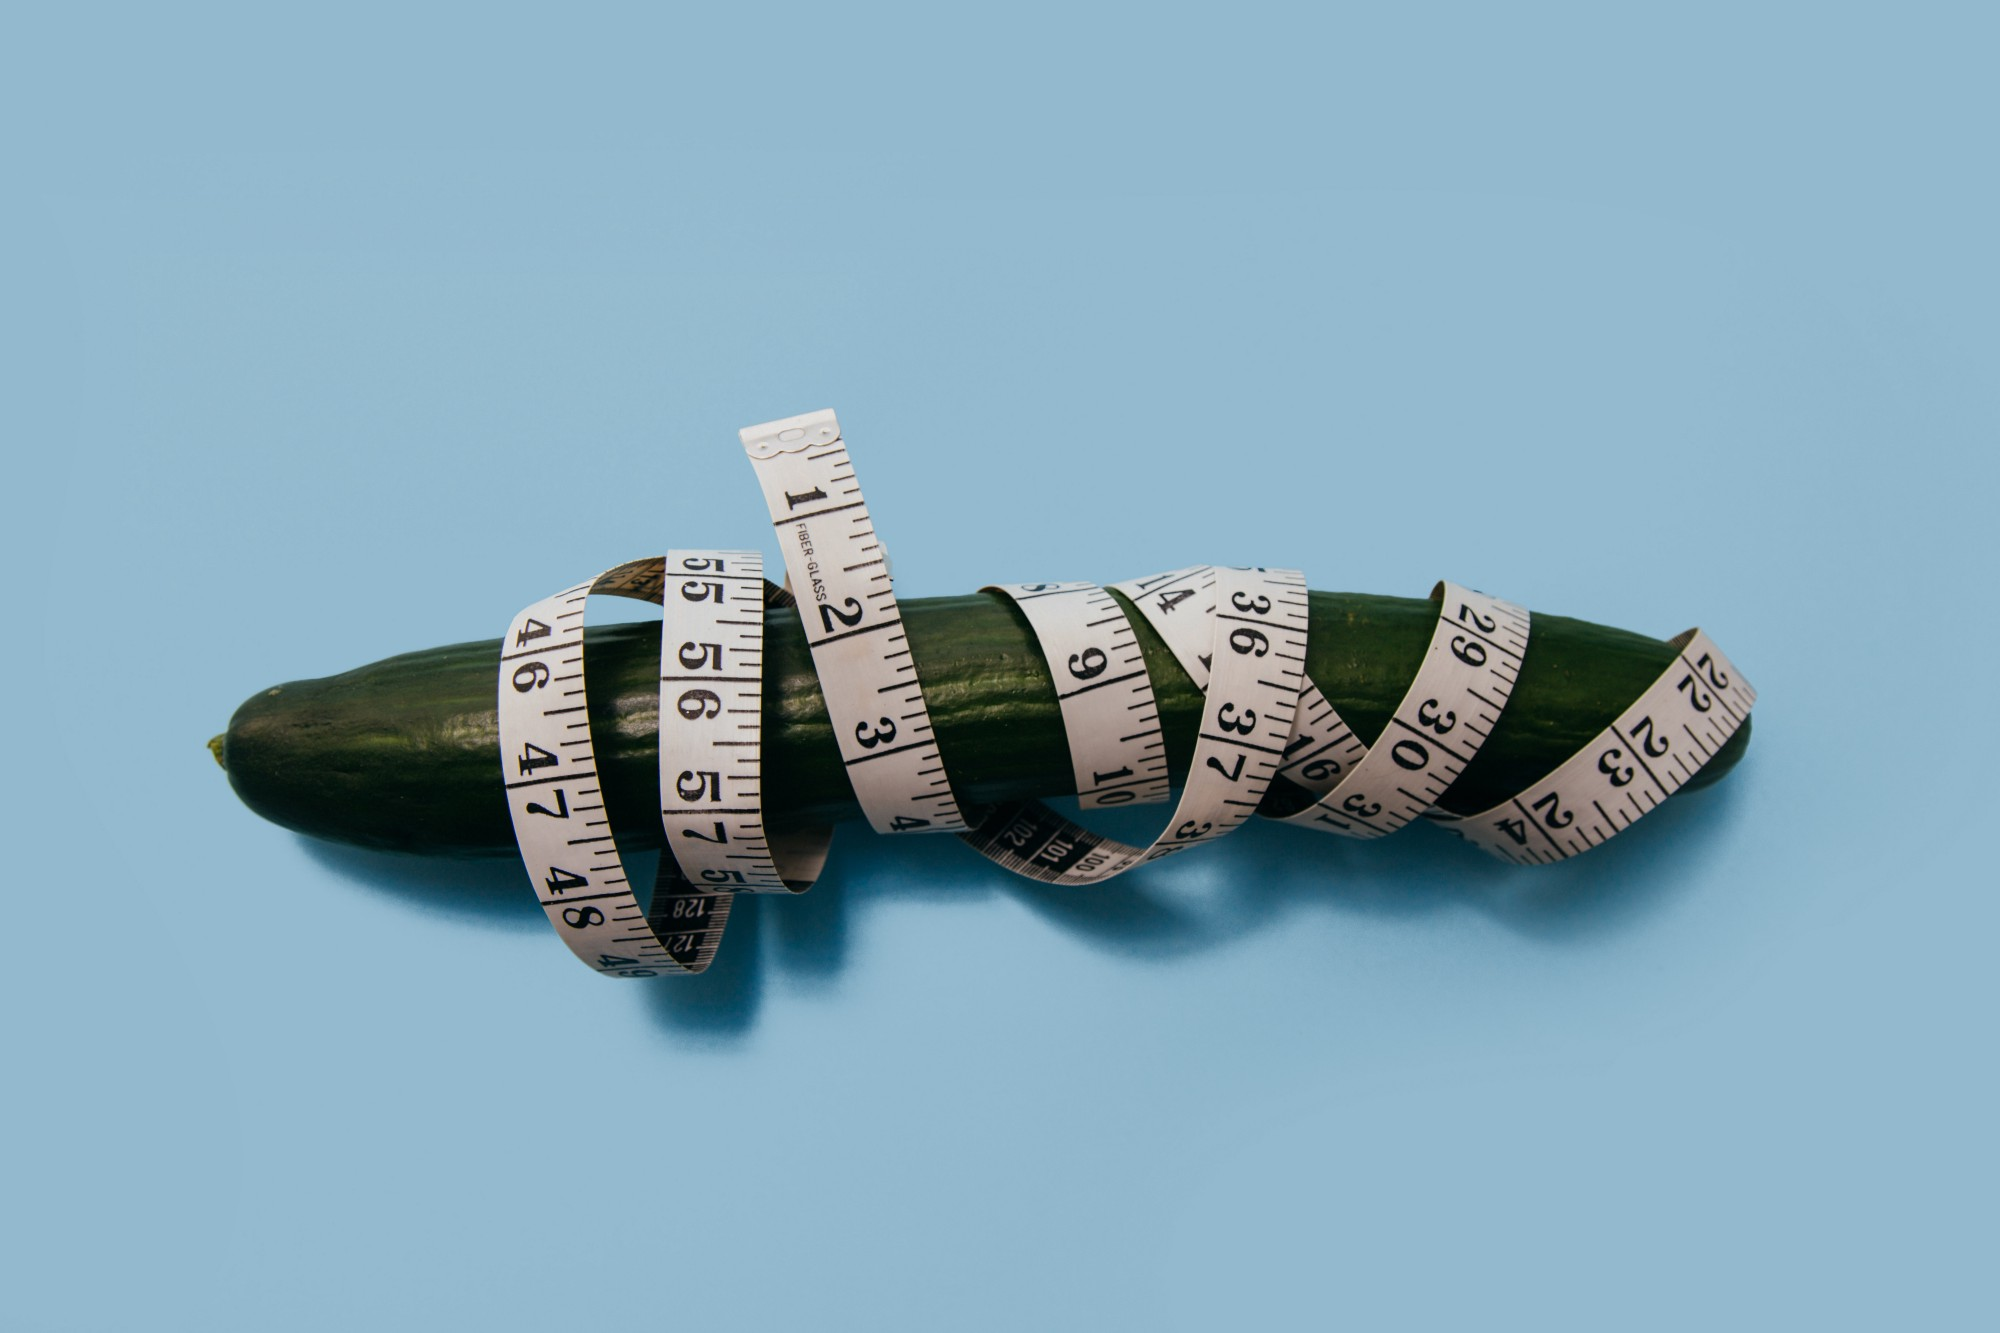 A measuring tape is wrapped around a cucumber.